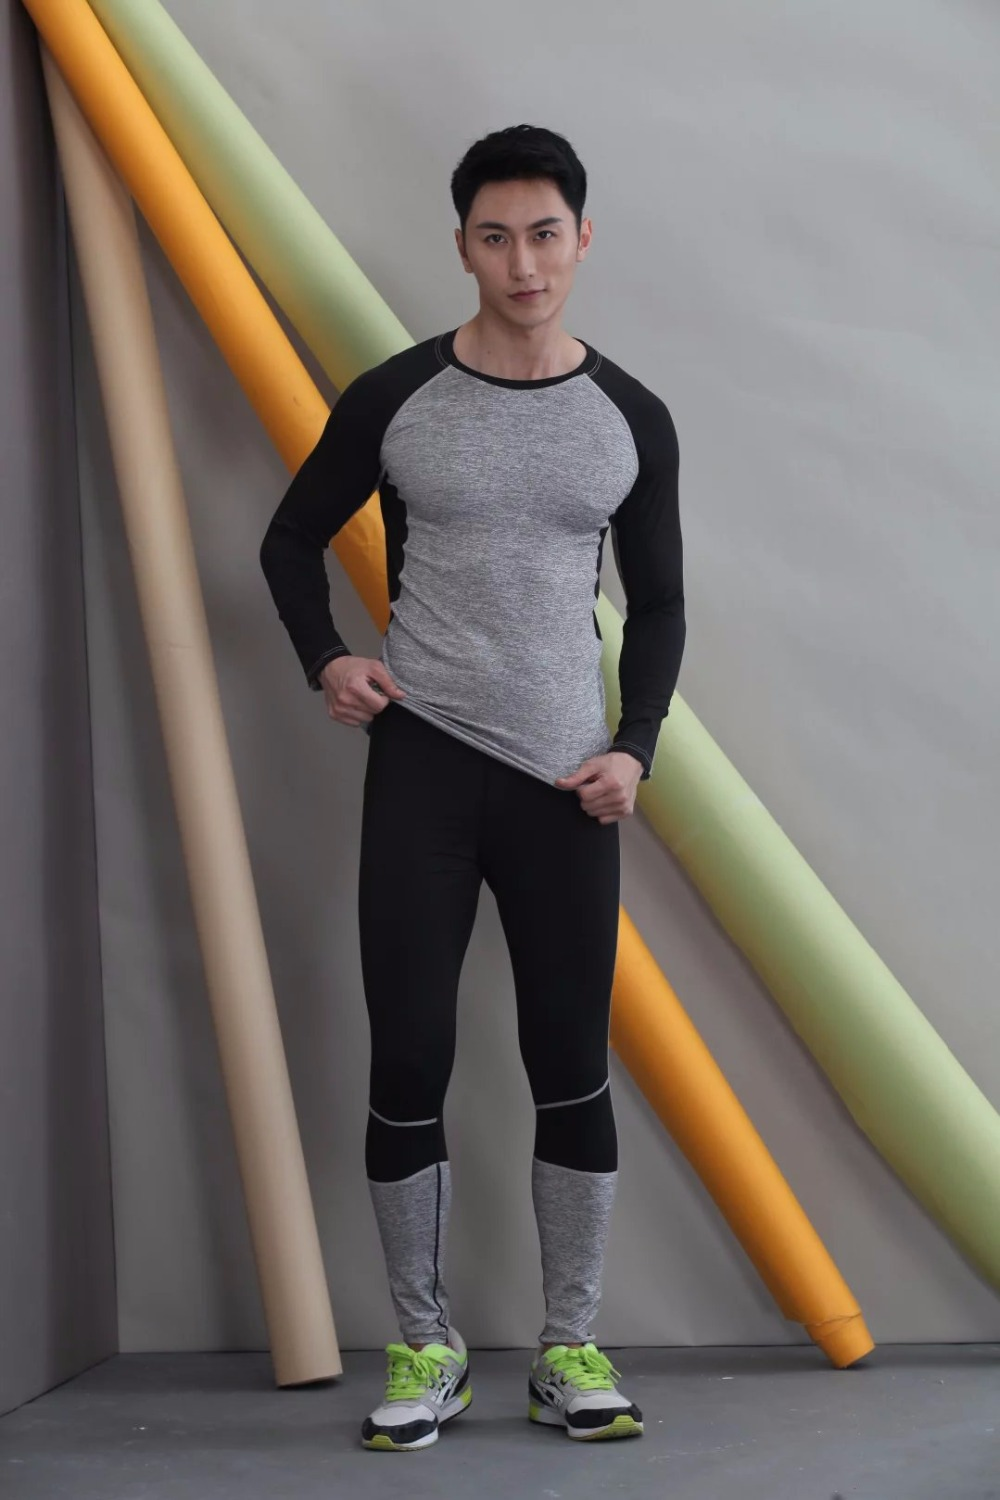 New thermal underwear men underwear sets compression sportswear Sweat fleece quick drying thermo underwear men clothing